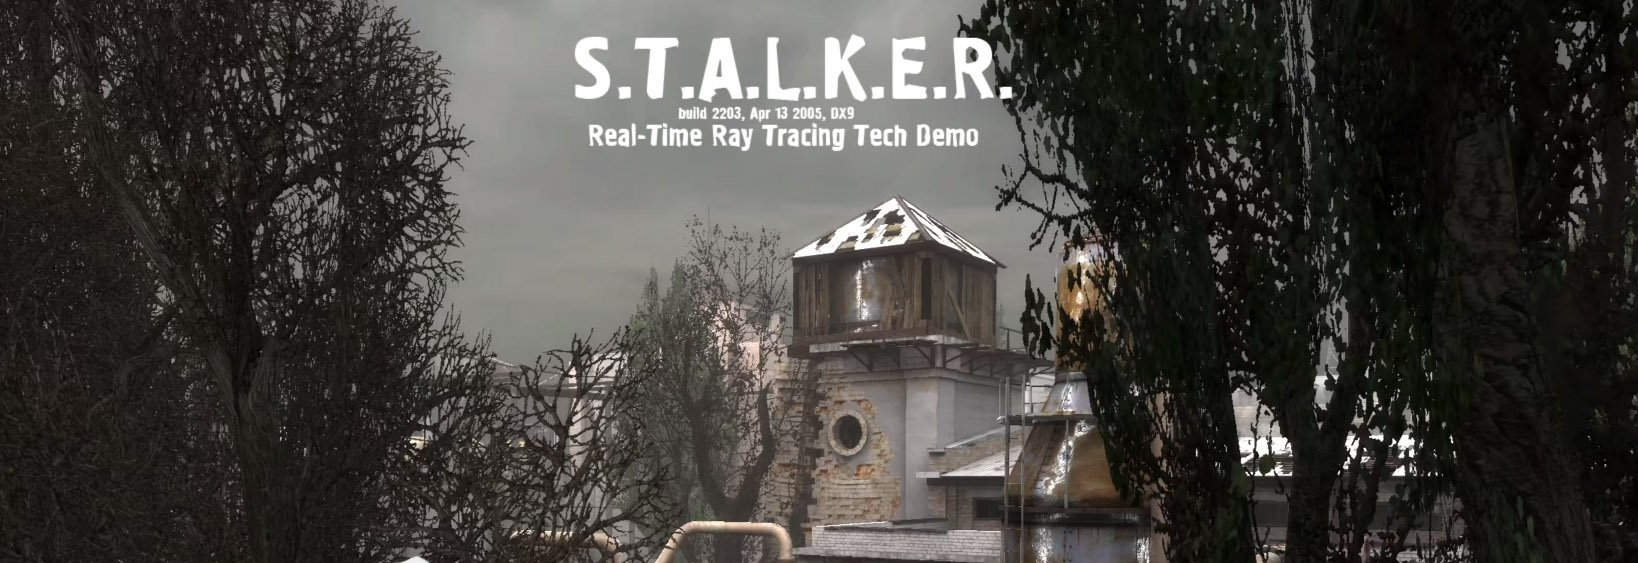 S.T.A.L.K.E.R. Cinematic Real-Time Ray Tracing Tech Demo